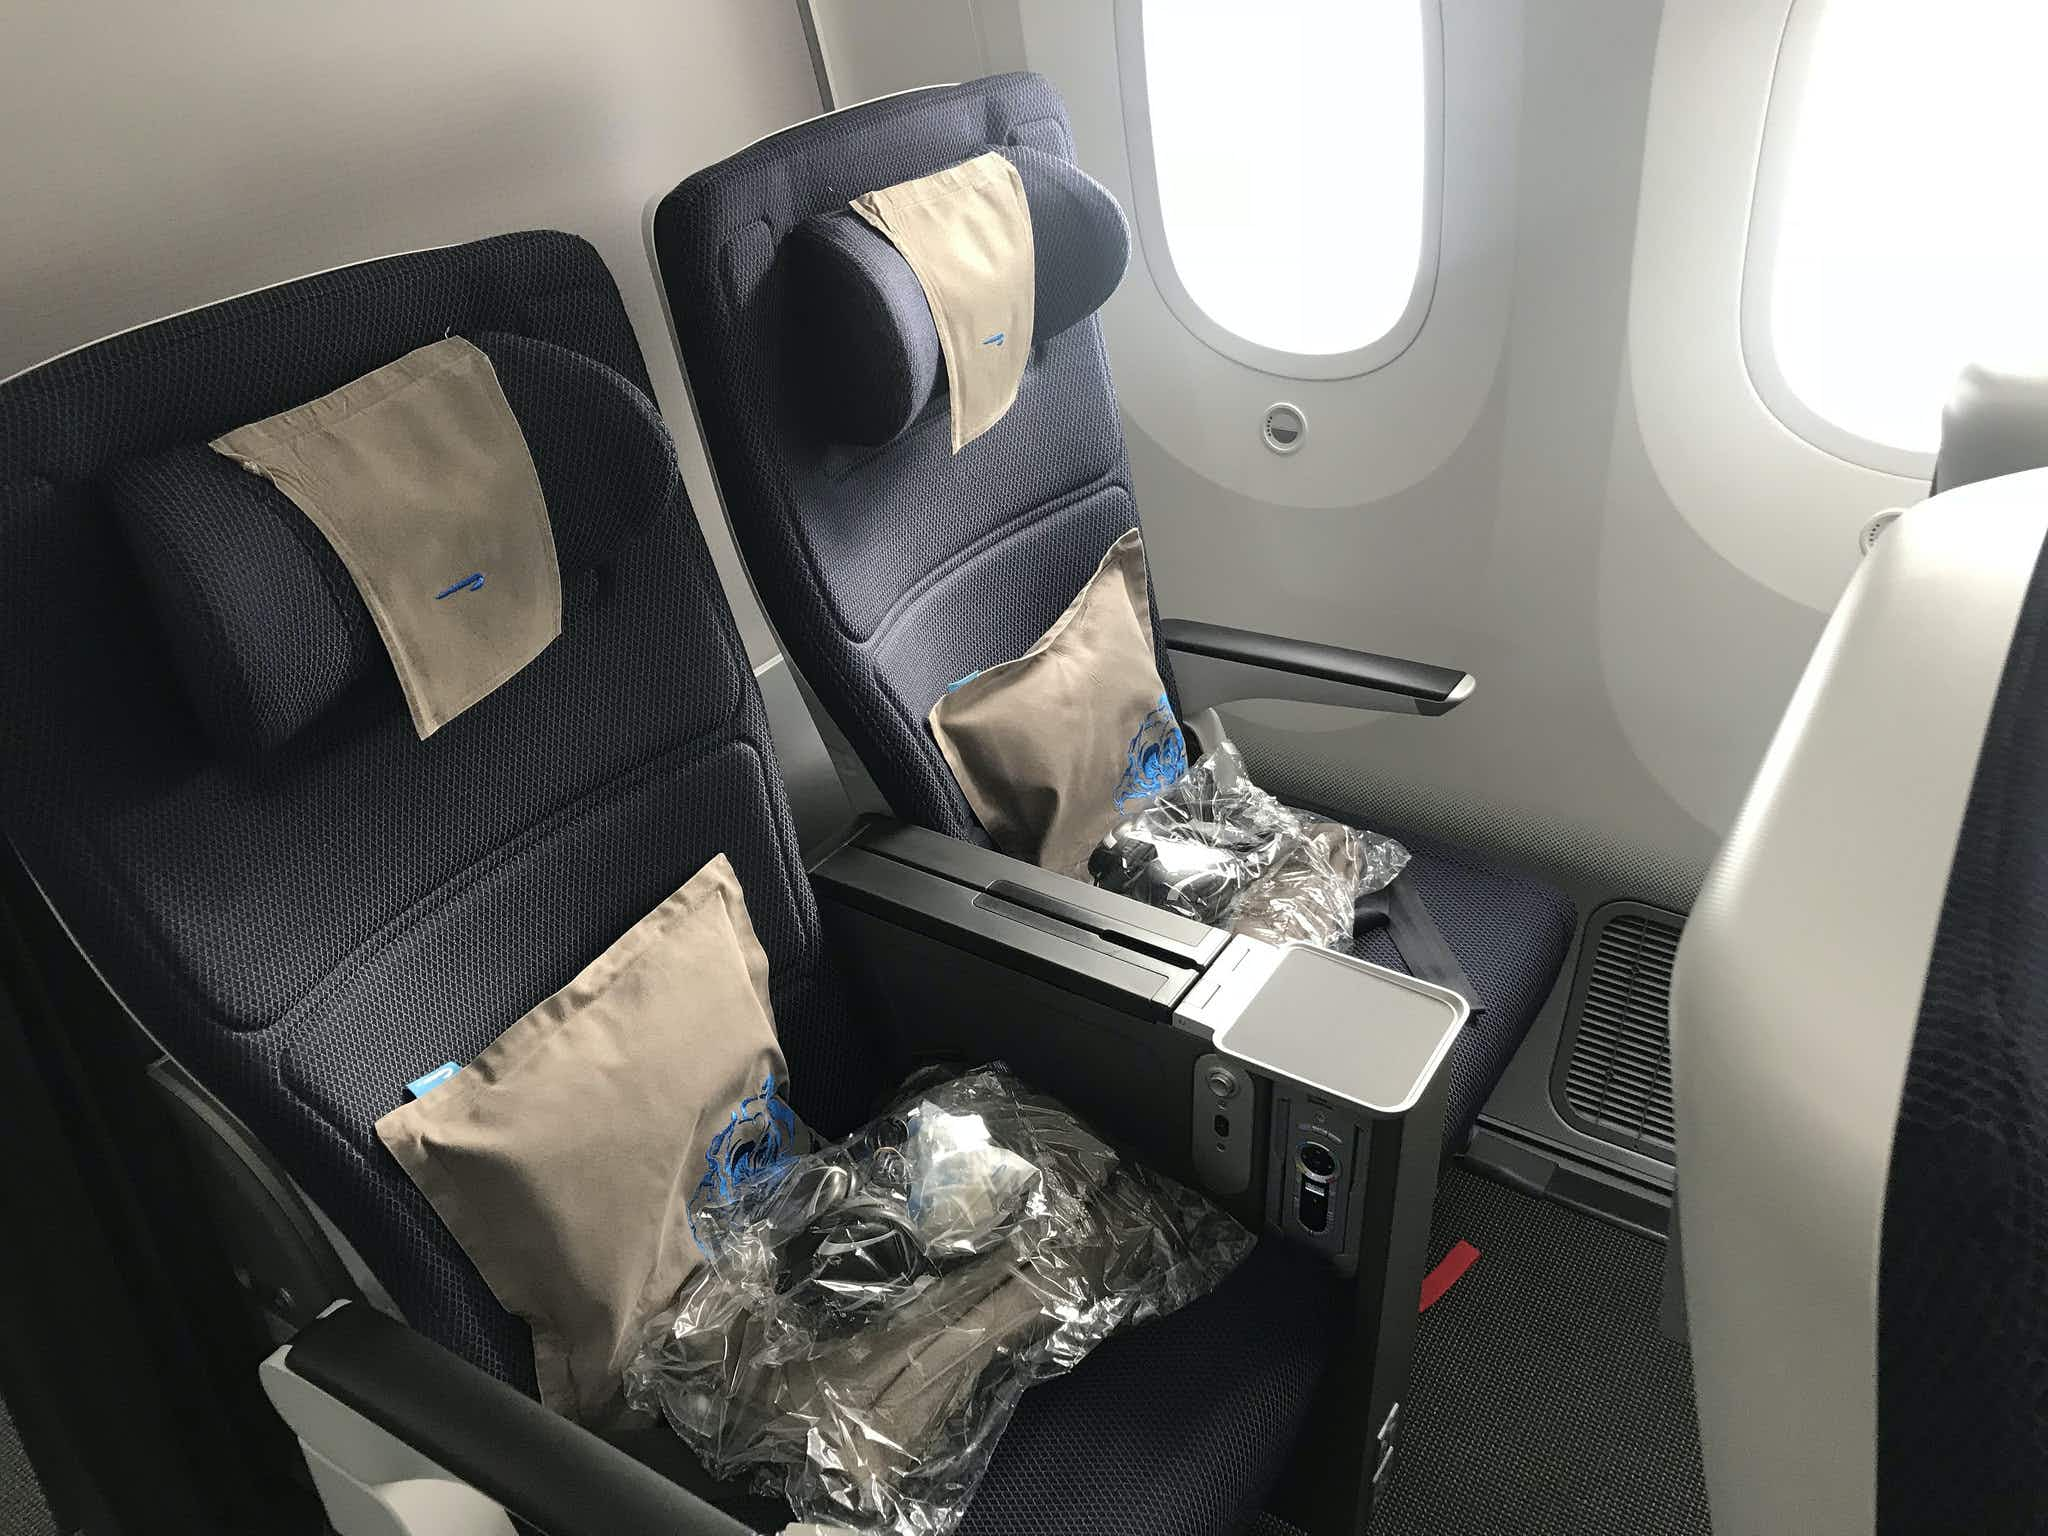 Plane Insider: What do you get when you buy premium economy, and is it worth it?